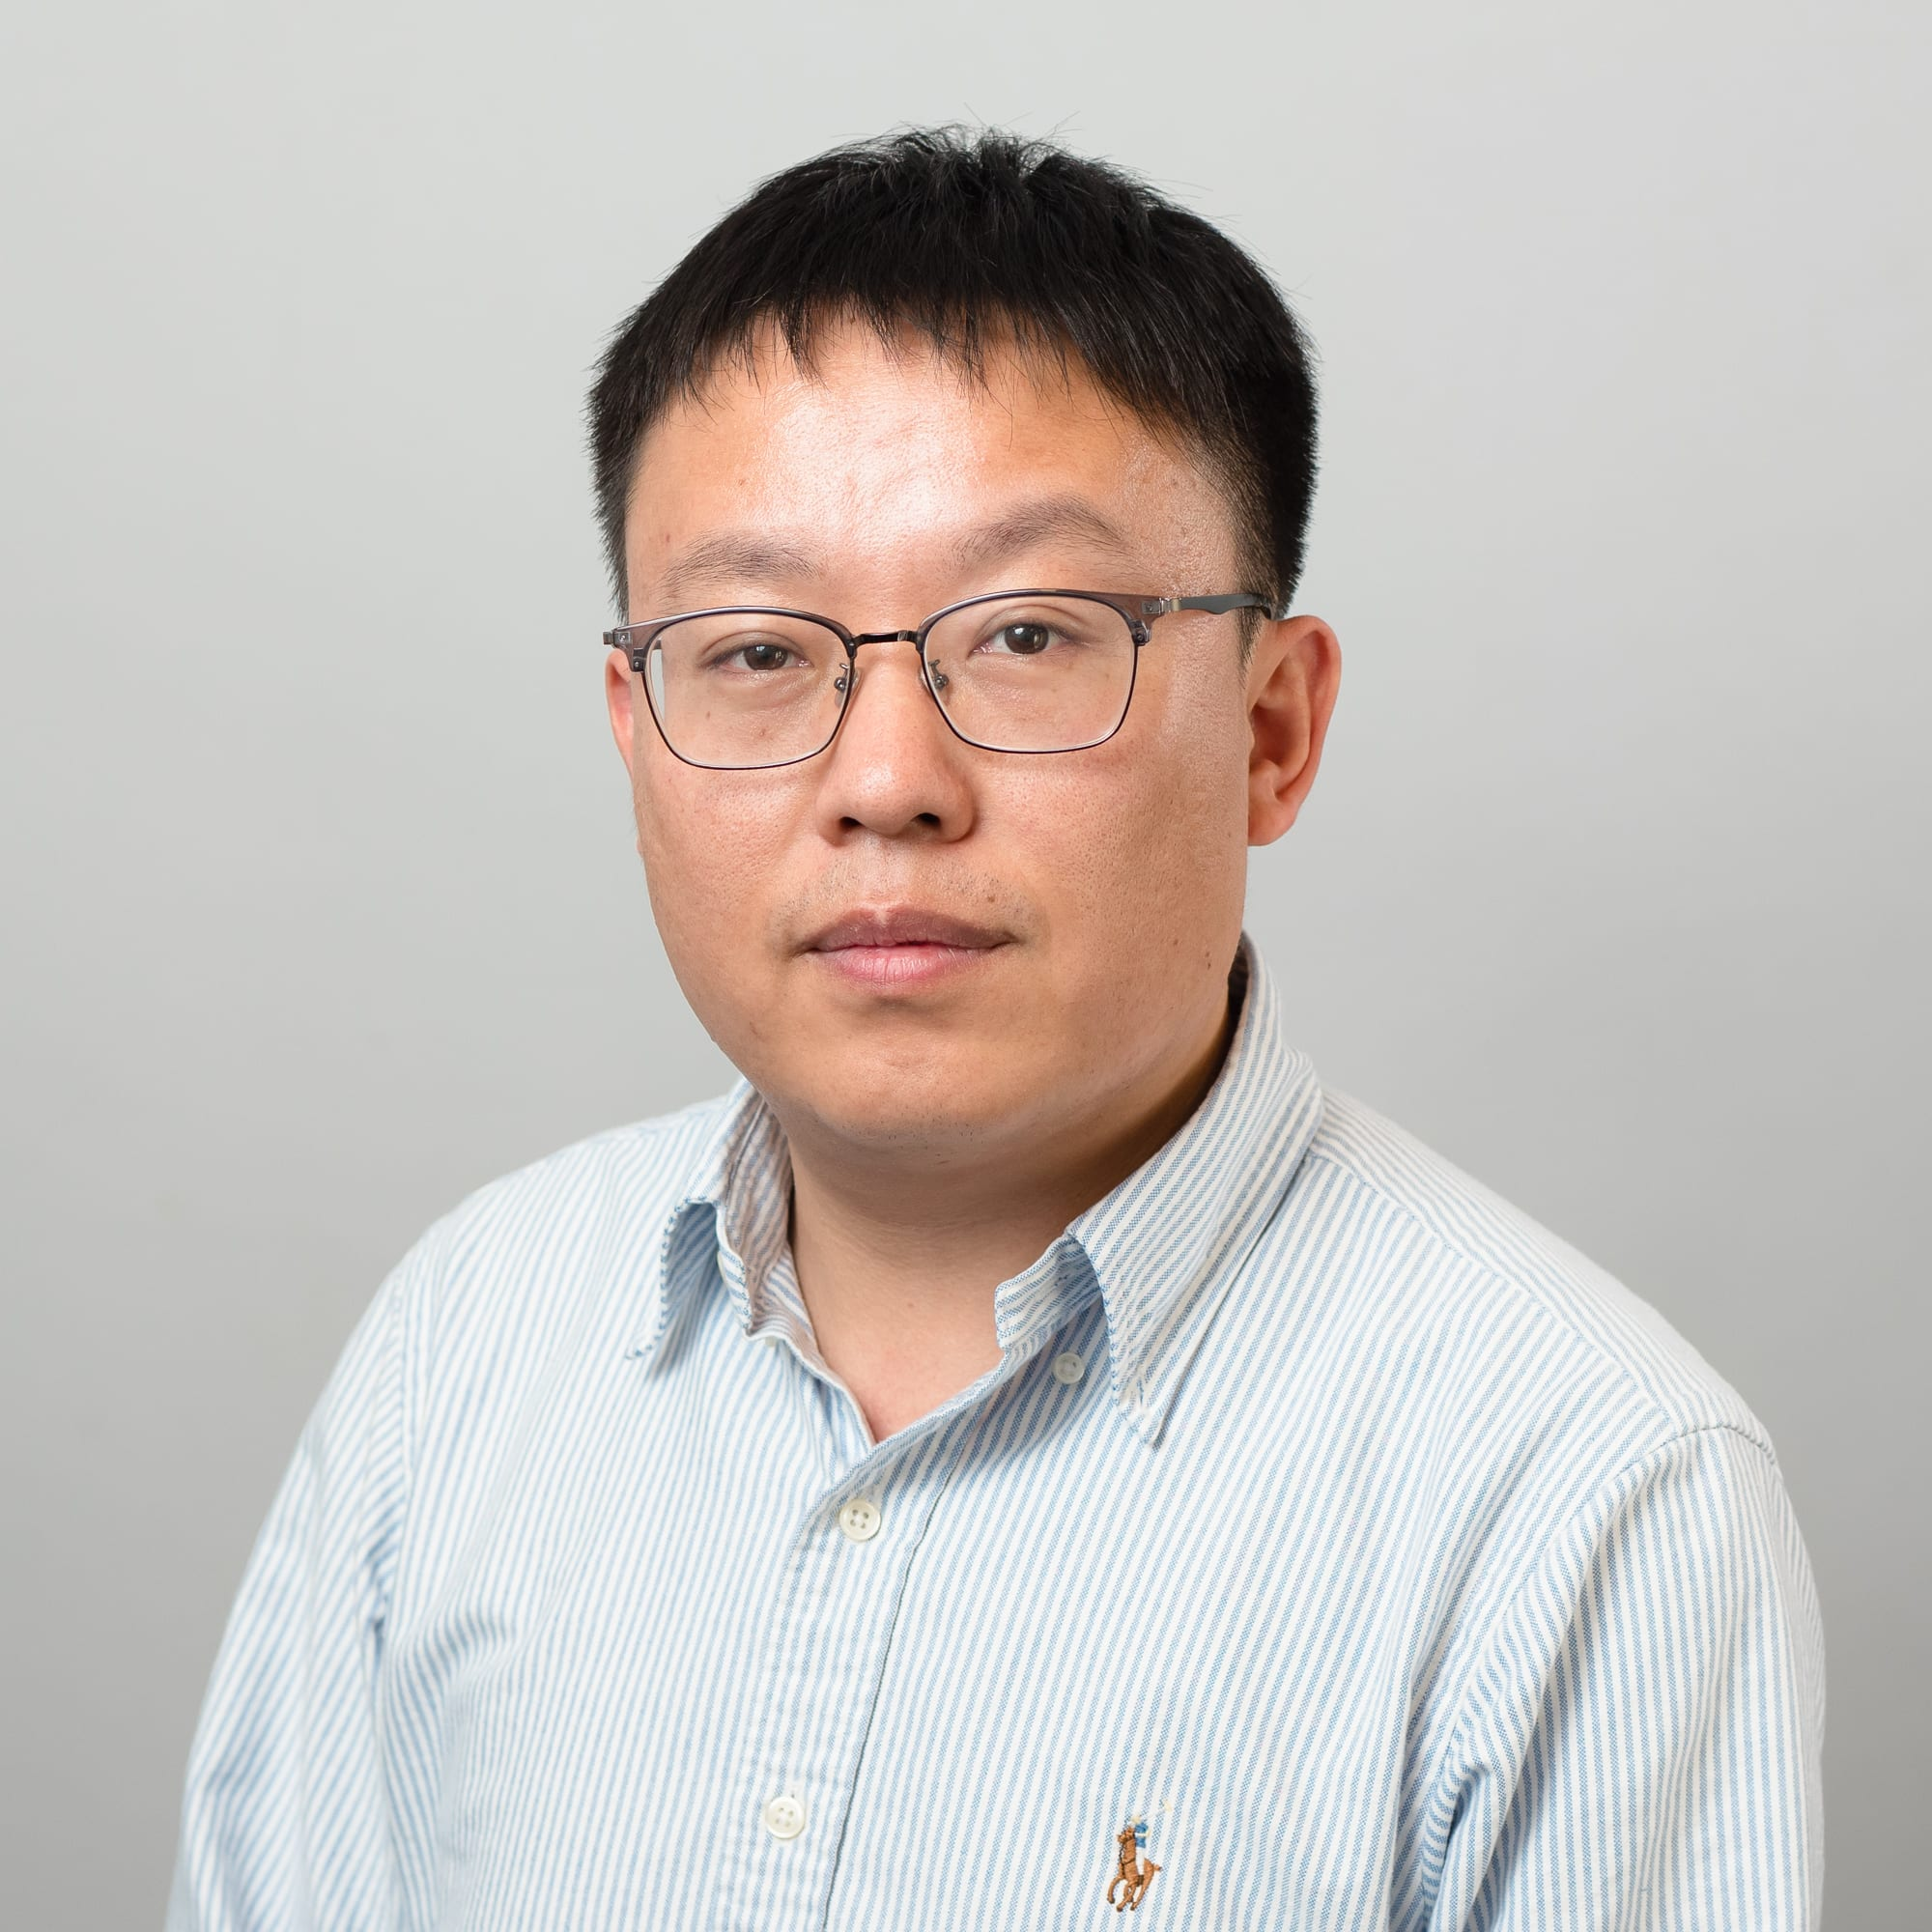 Zhenggang Xu, Senior software engineer